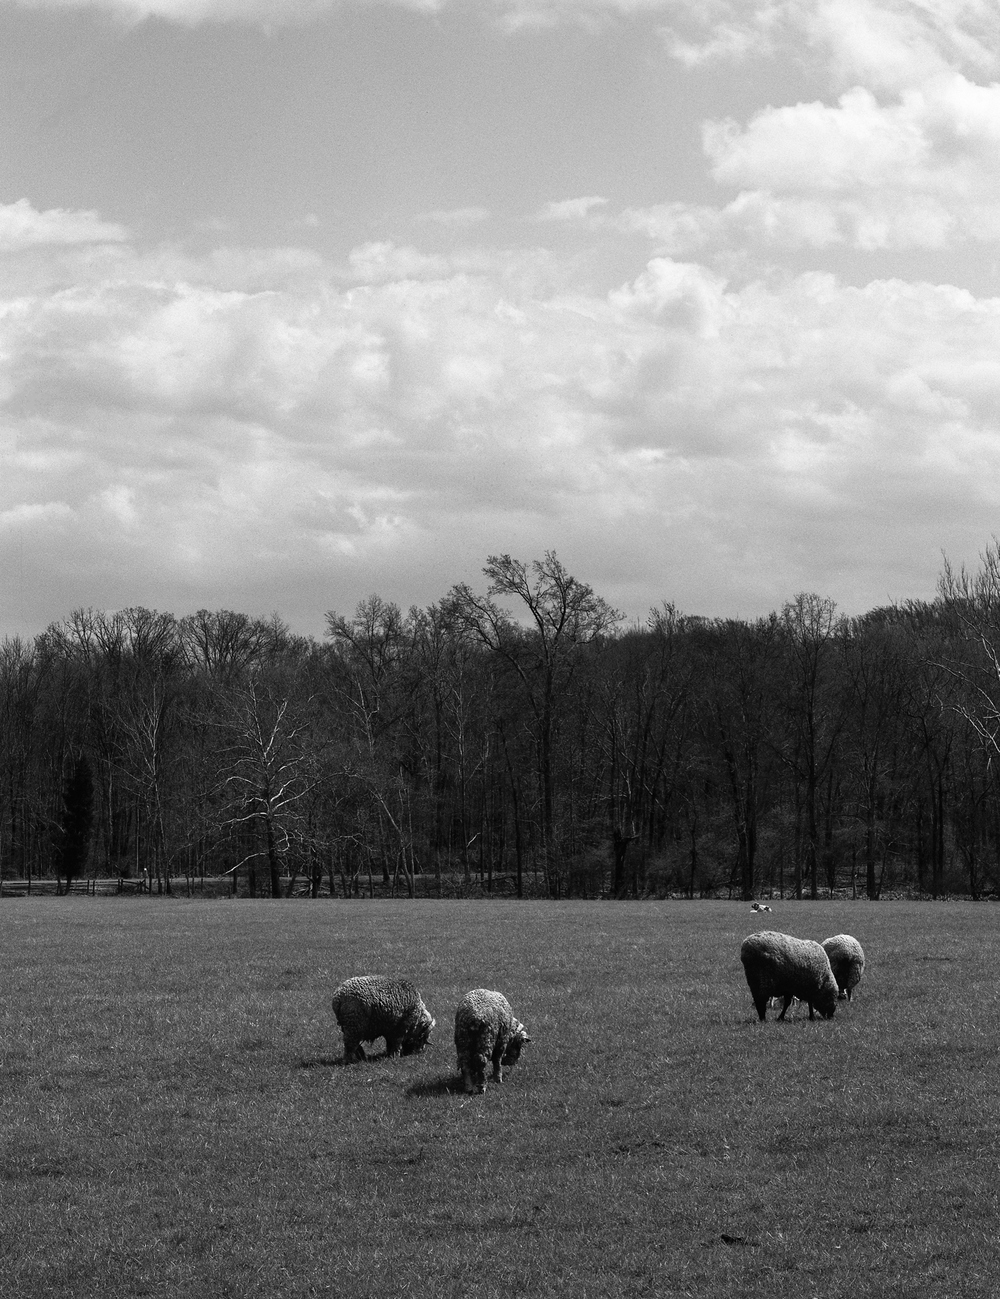 4x5_for_365_project_0129_Hopewell_Village_sheep.png